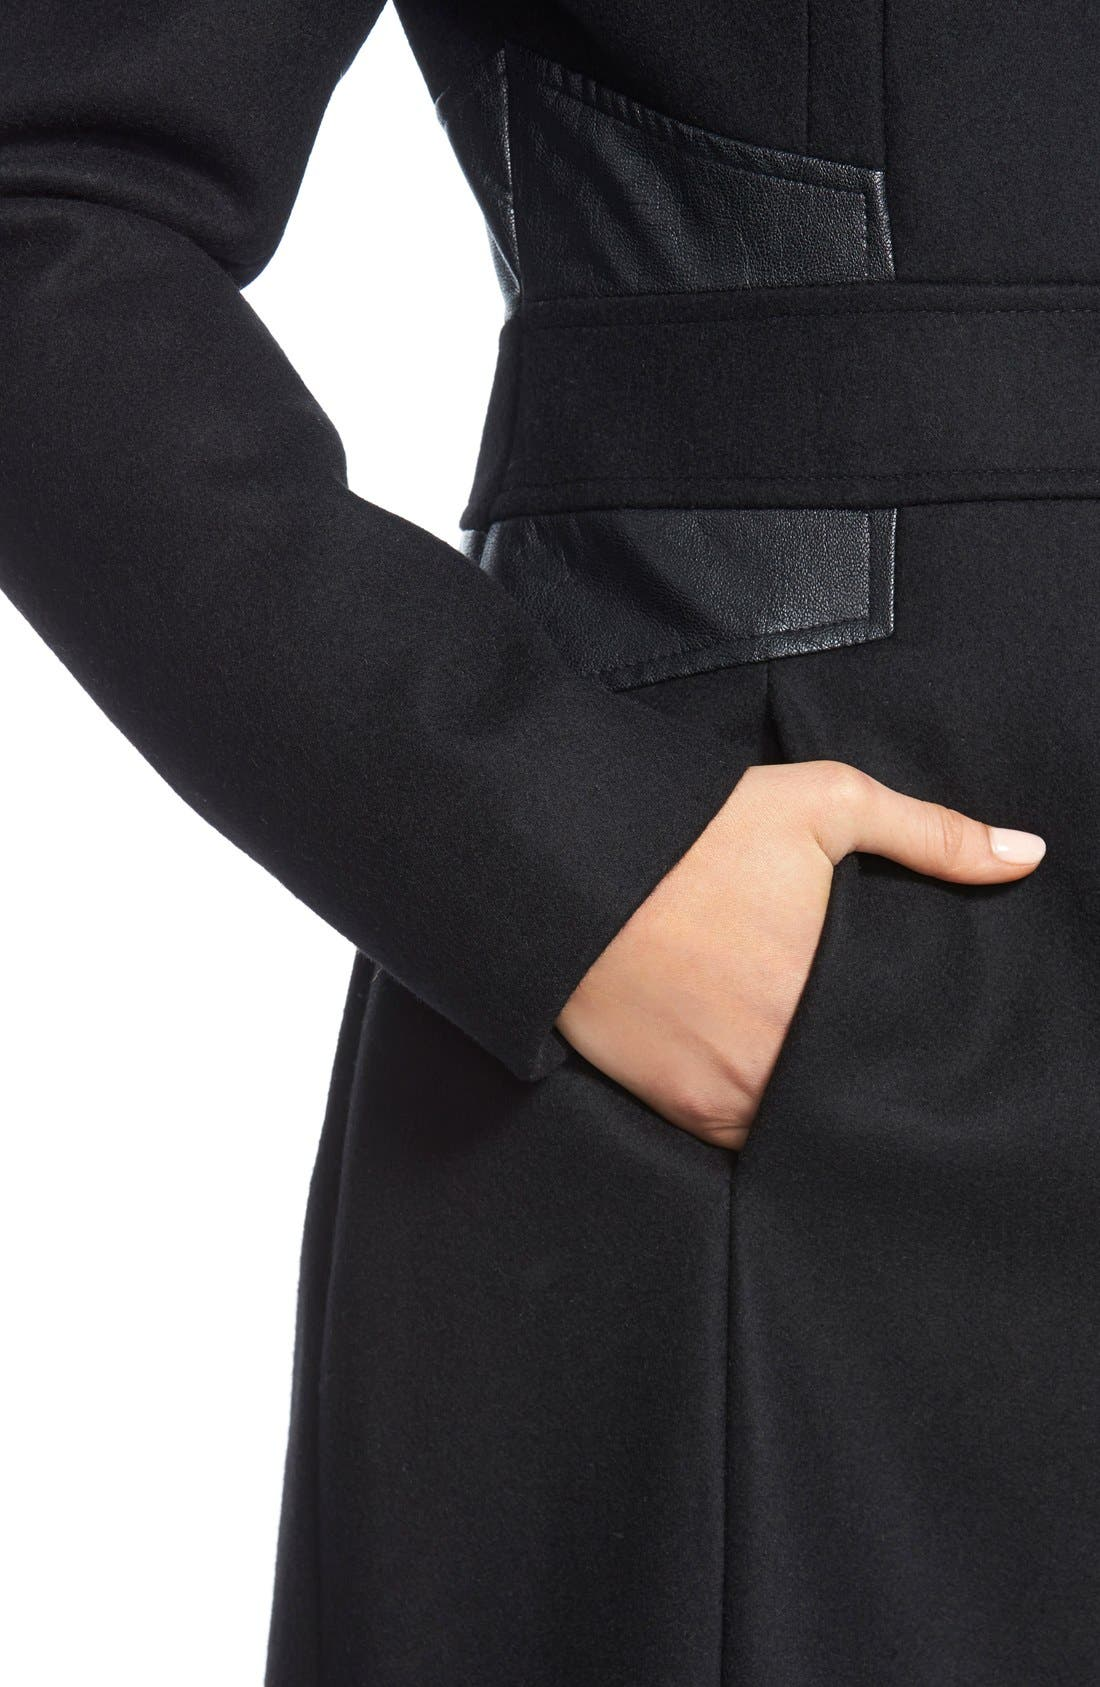 Wool Blend Coat with Faux Leather Trim,                             Alternate thumbnail 2, color,                             001